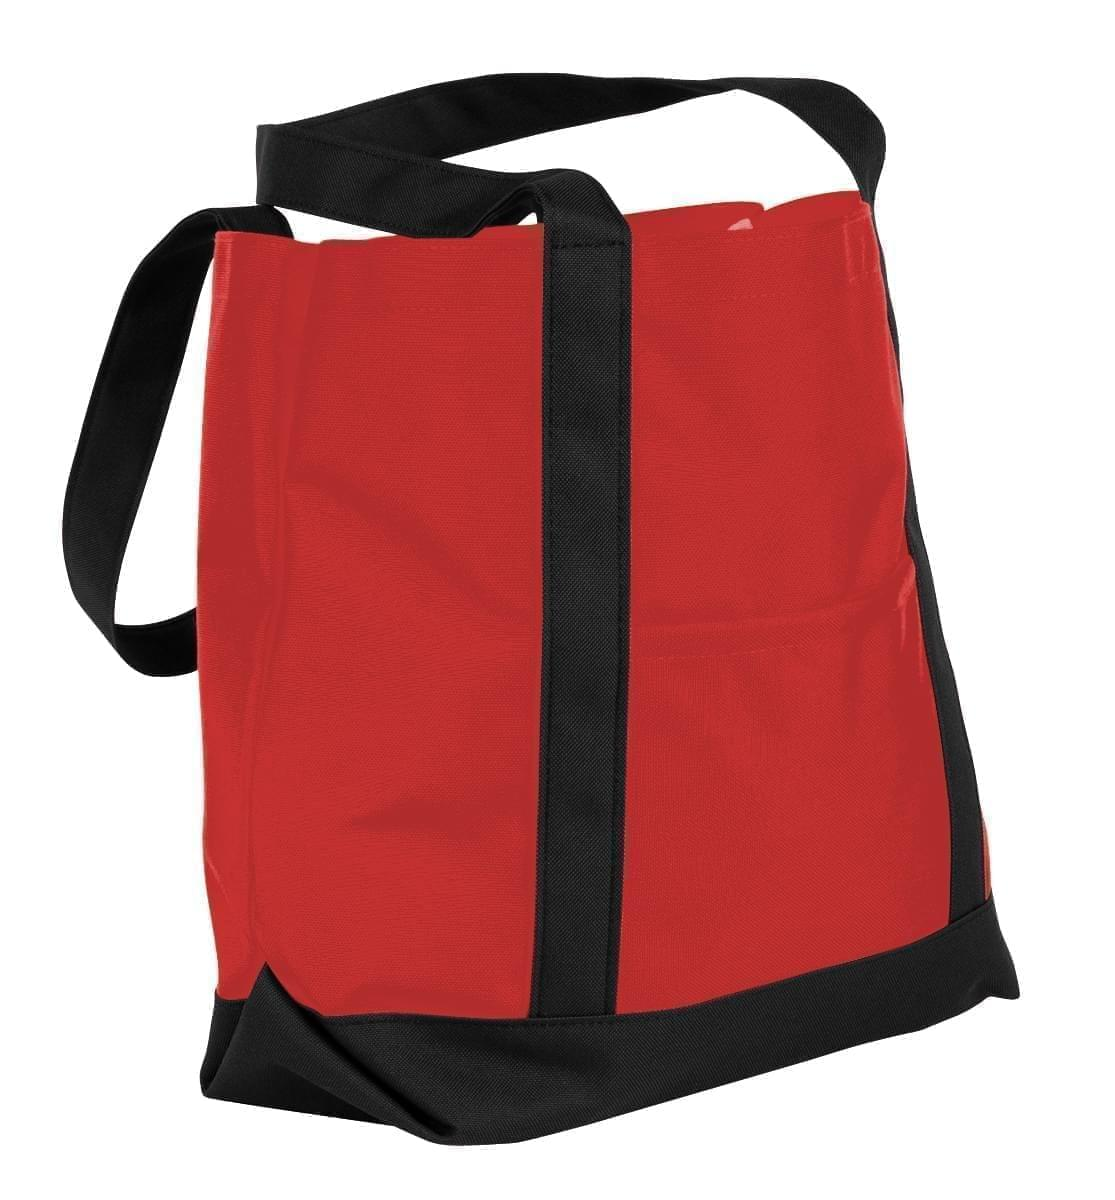 USA Made Nylon Poly Boat Tote Bags, Red-Black, XAACL1UAZC